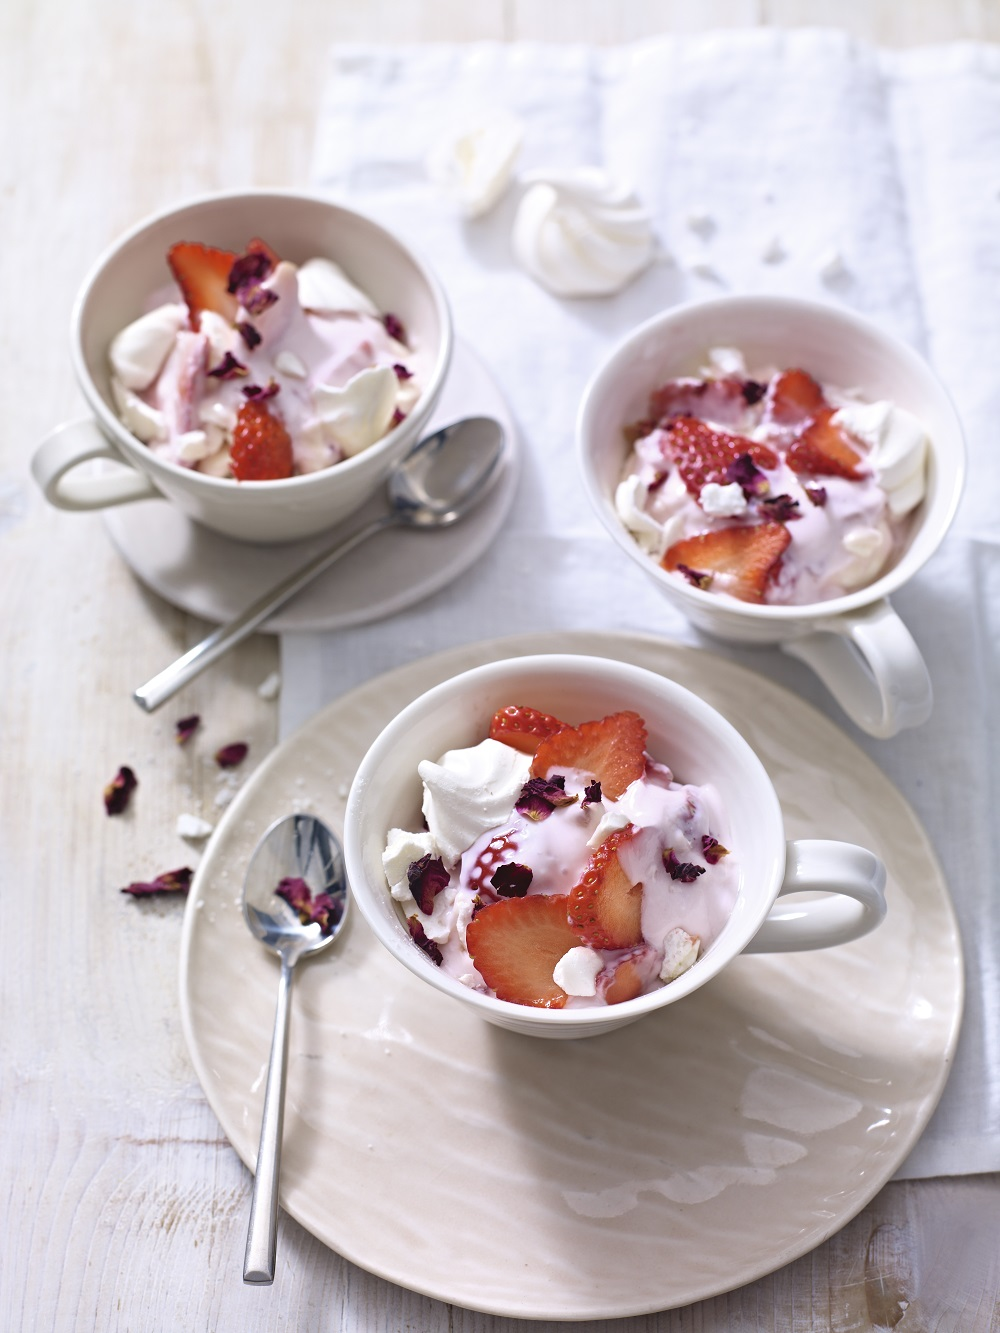 Speedy Strawberry Yogurt And Meringue Mess